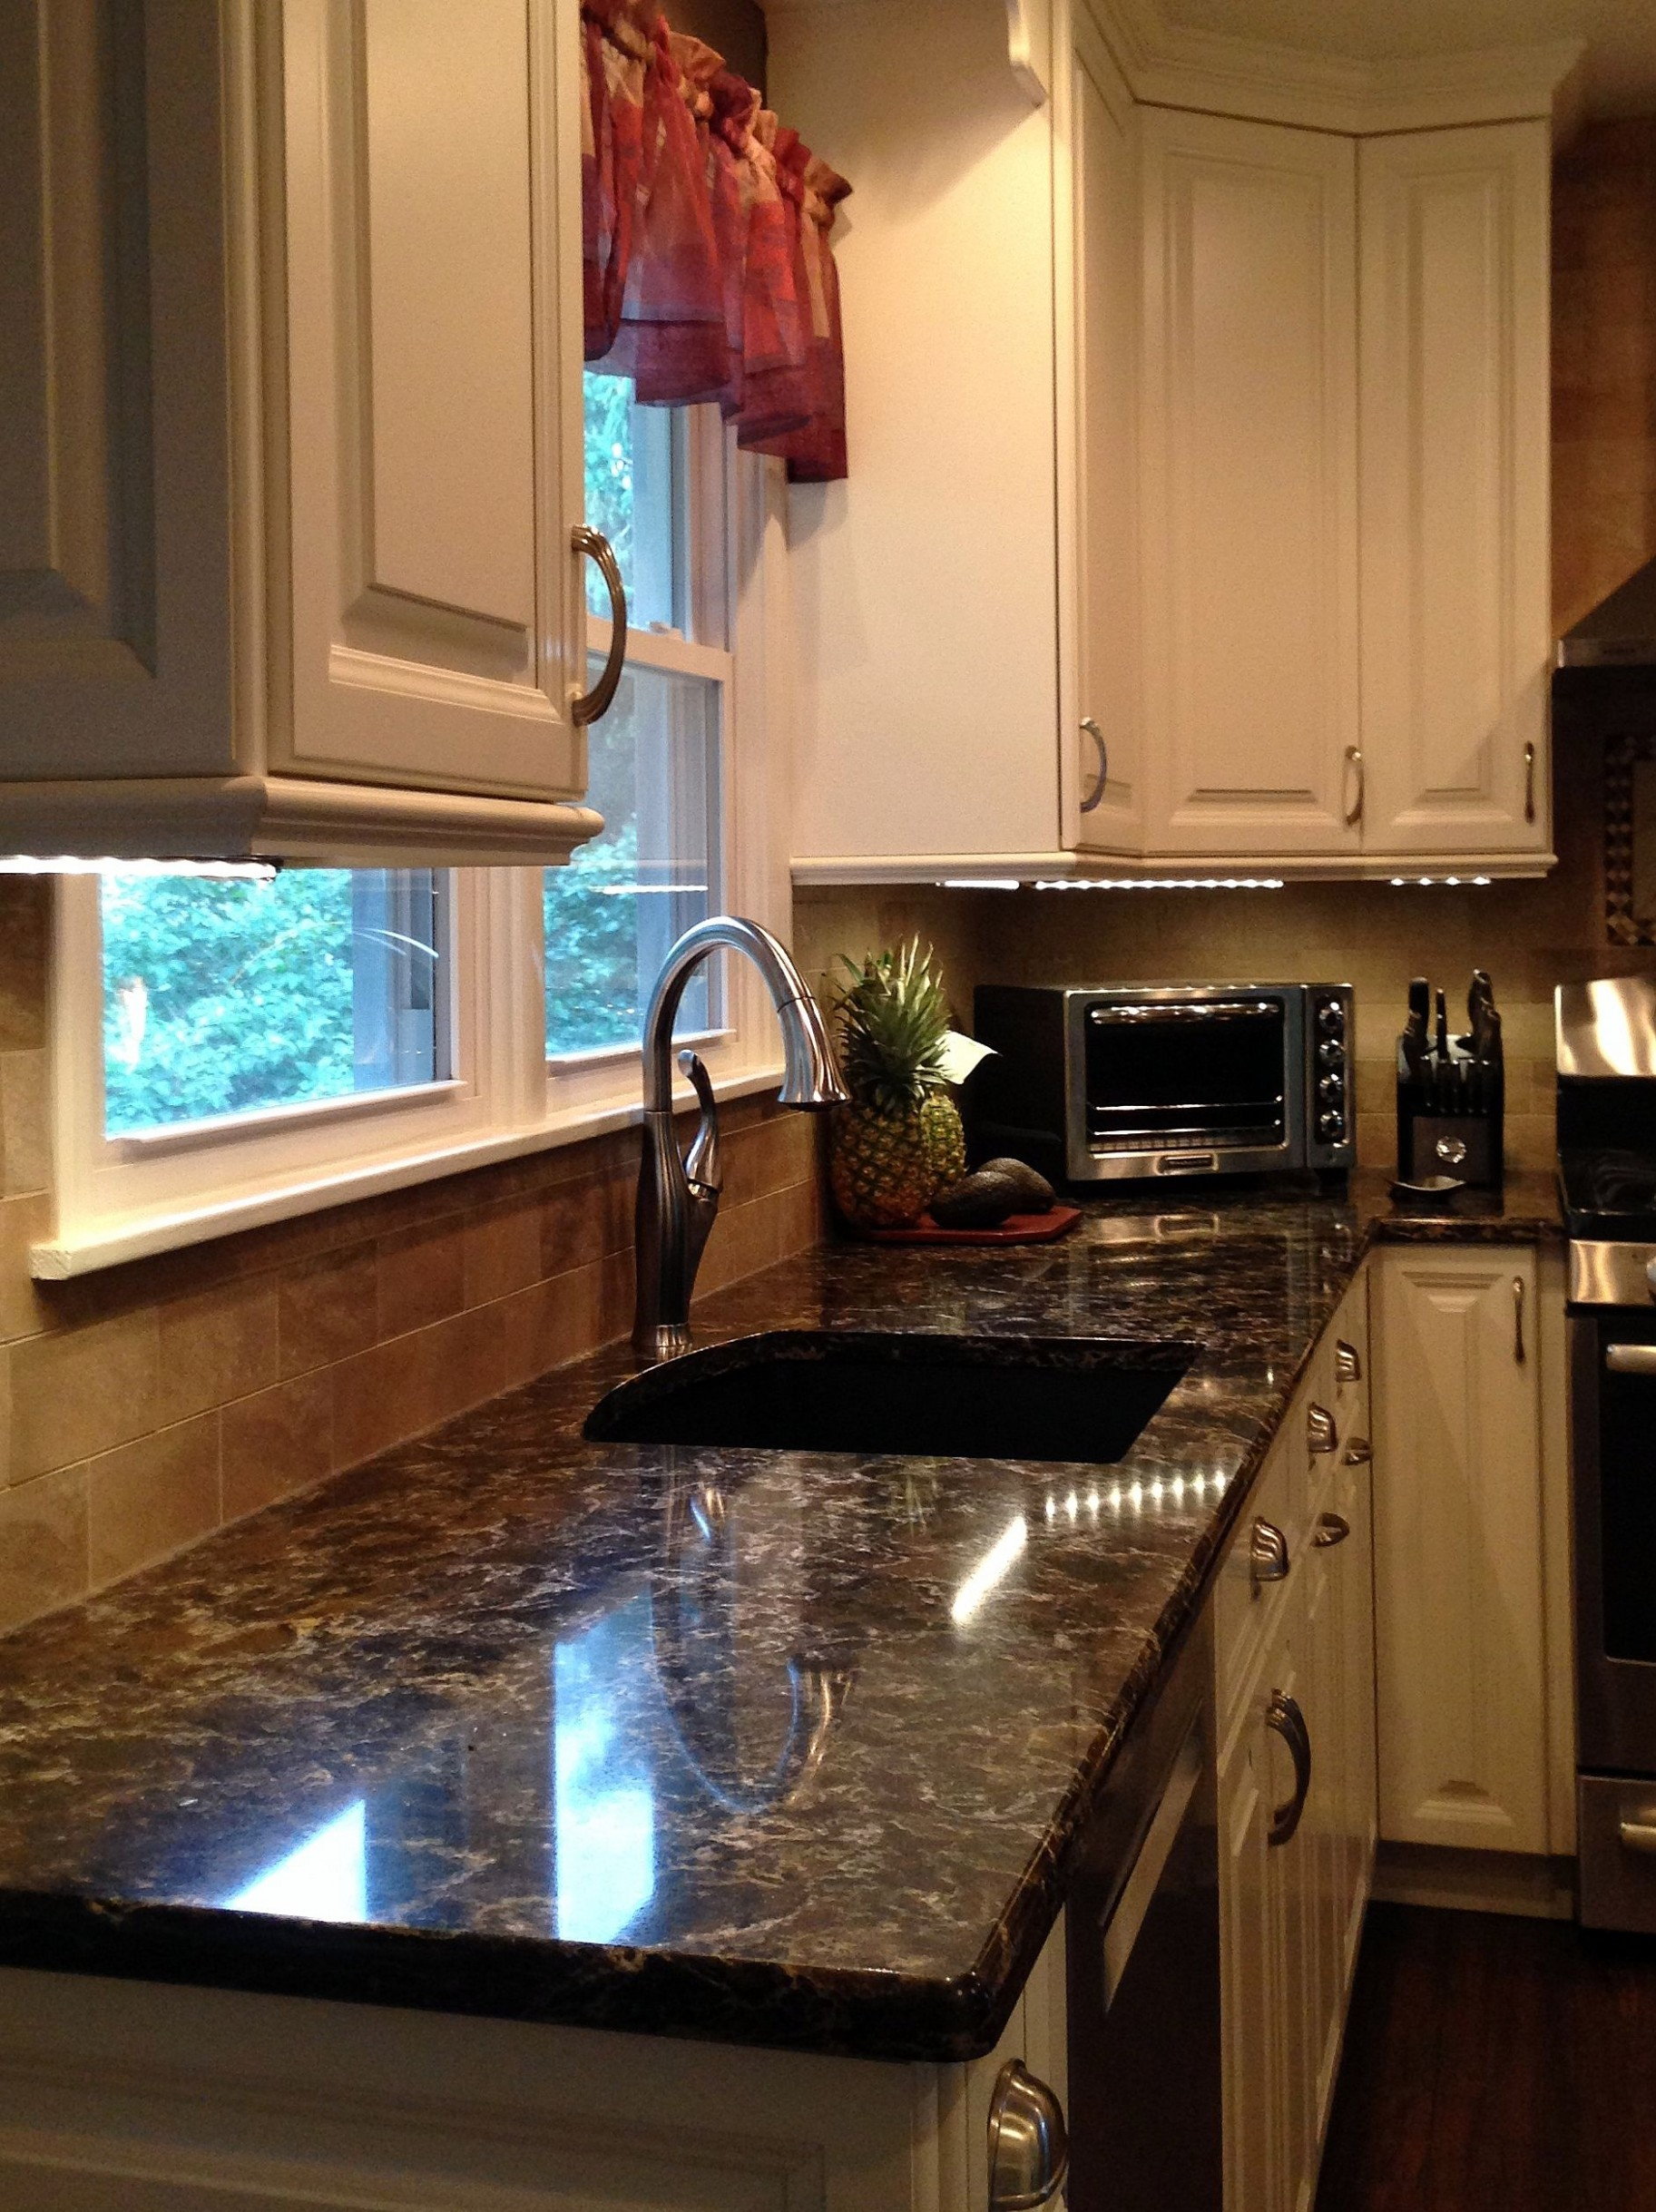 White Millbrook kitchen with laneshaw quartz countertops (12 of 12  - Millbrook Kitchen Cabinets